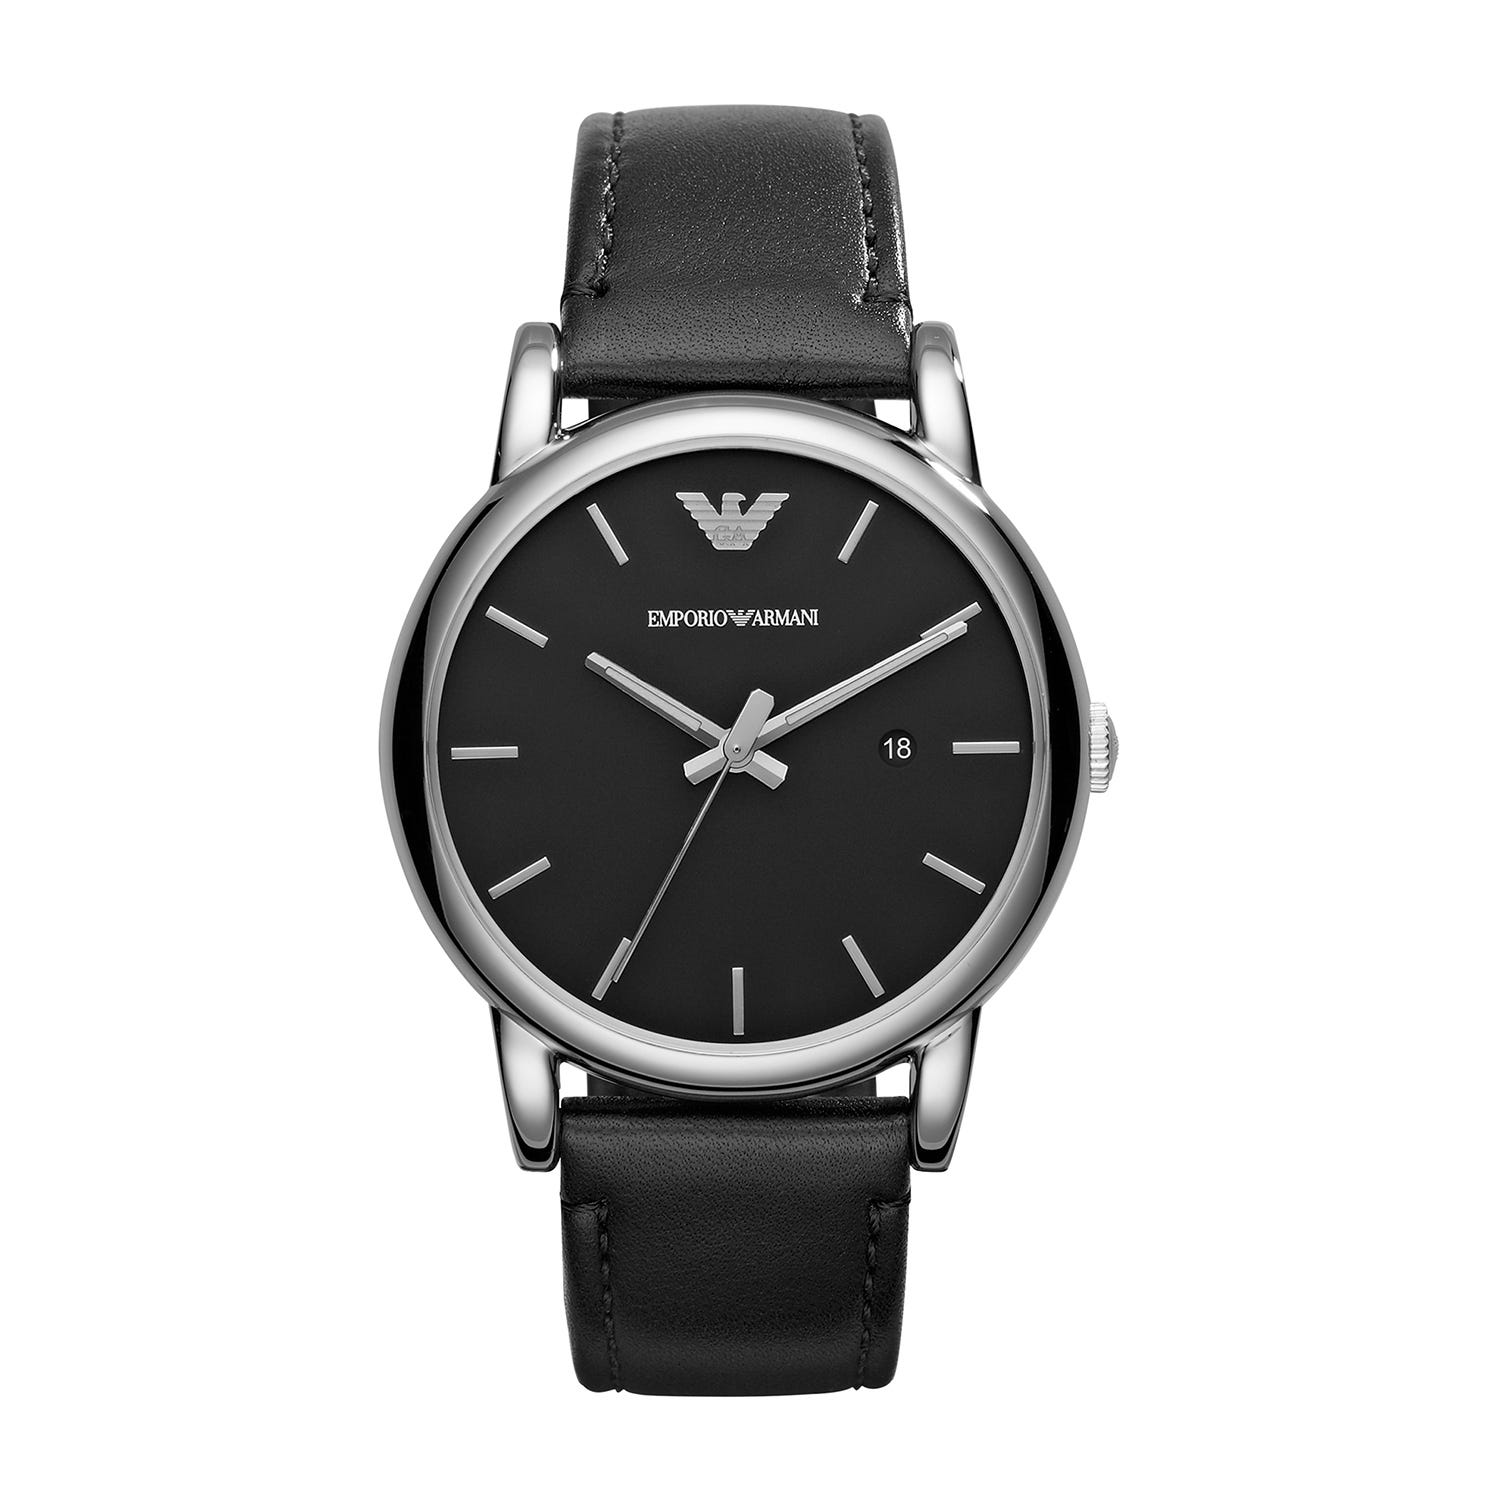 Emporio Armani men's black dial leather strap watch